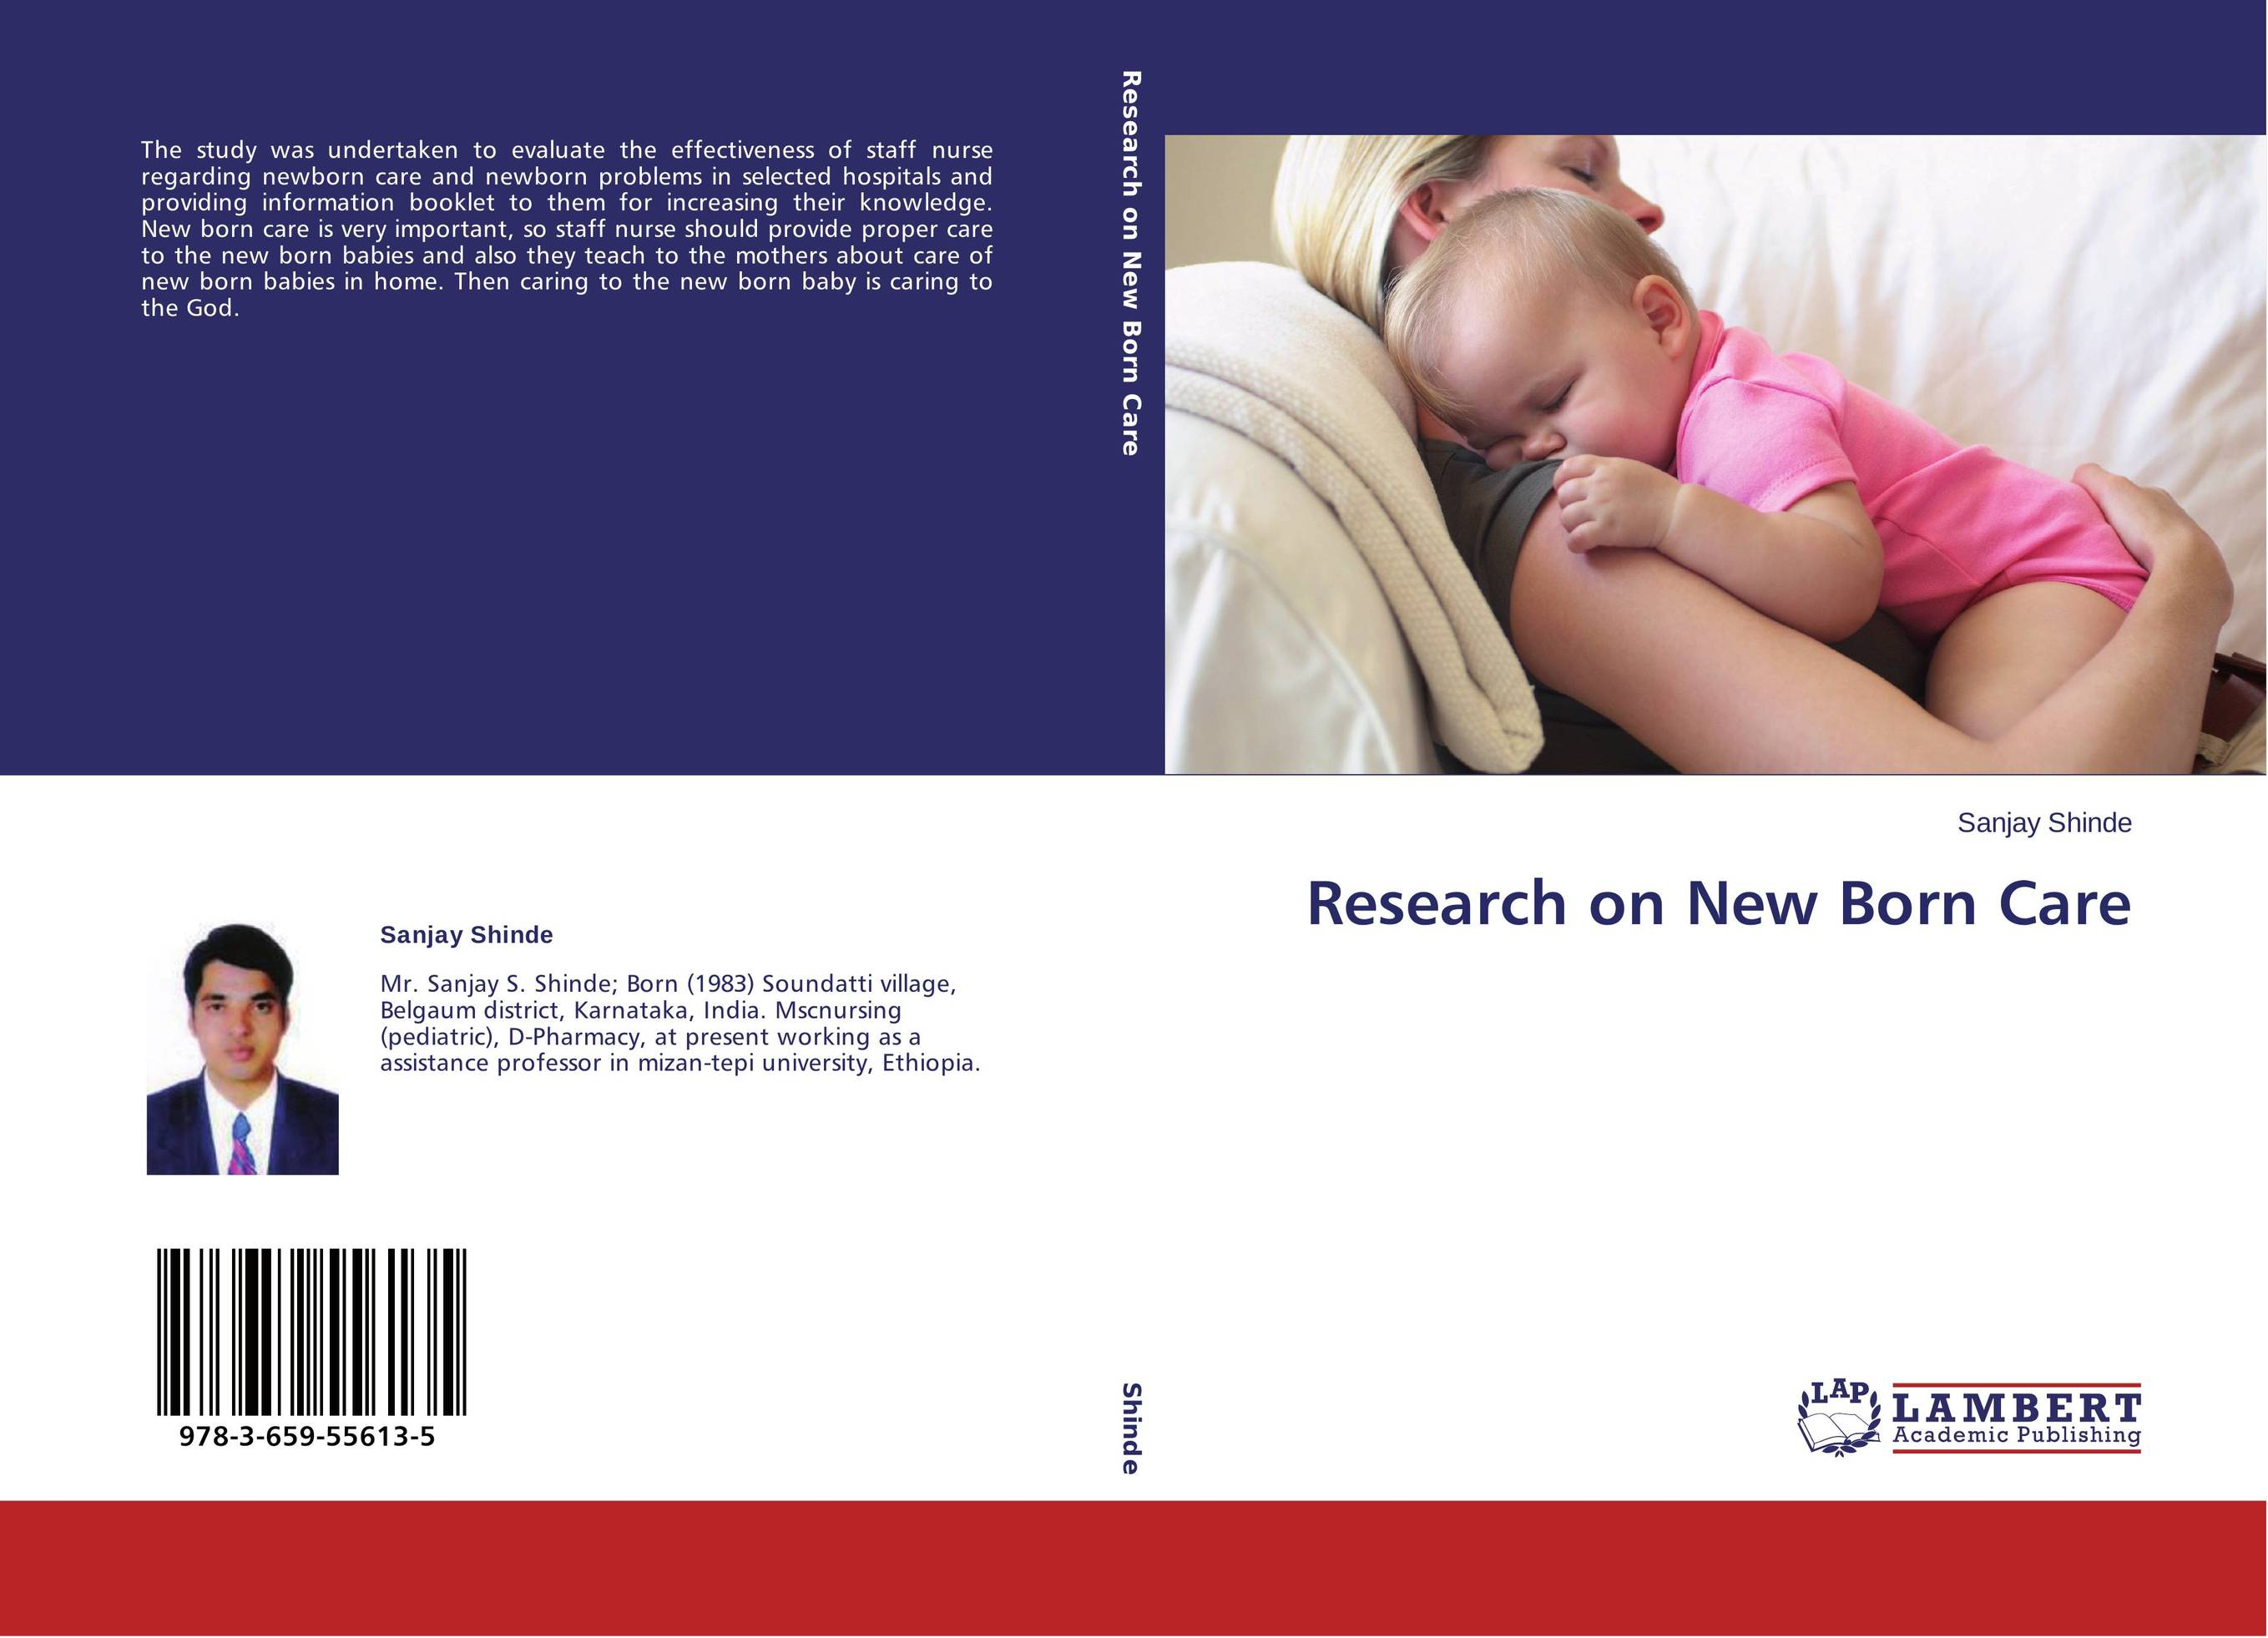 a research study on the newborn baby The purpose of the research study is to find out if kangaroo, or skin-to-skin contact, facilitates safe temperatures in newborn infants during the first few minutes and hours after birth, specifically during breastfeeding in this article the problem statement is written clearly and it expresses a relationship between two or more variables.